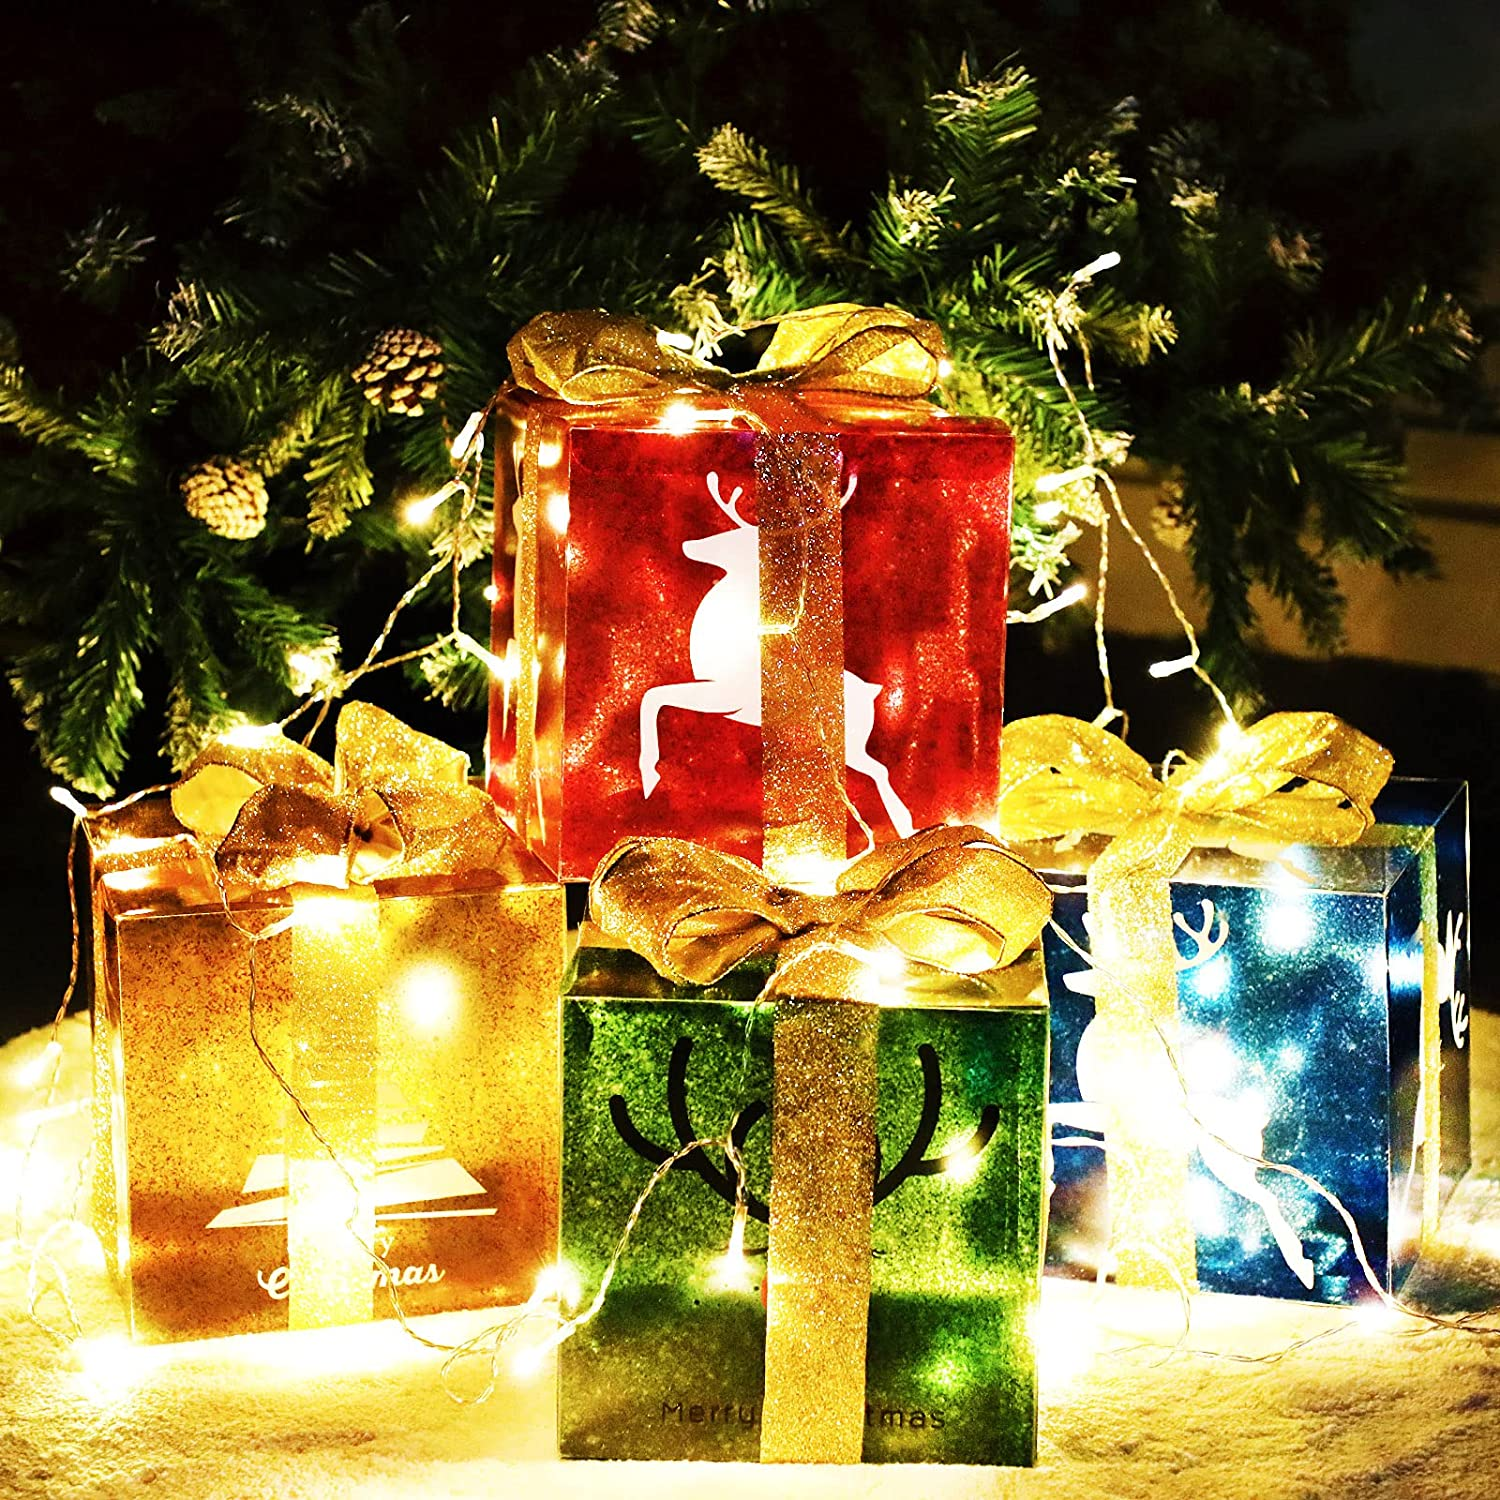 4 Christmas Lighted Gift Boxes and 80 LED Light Decorations, Xmas Tree Reindeer Lit Present Box with Glitter Bows for Indoor Outdoor Yard Home Party Decor